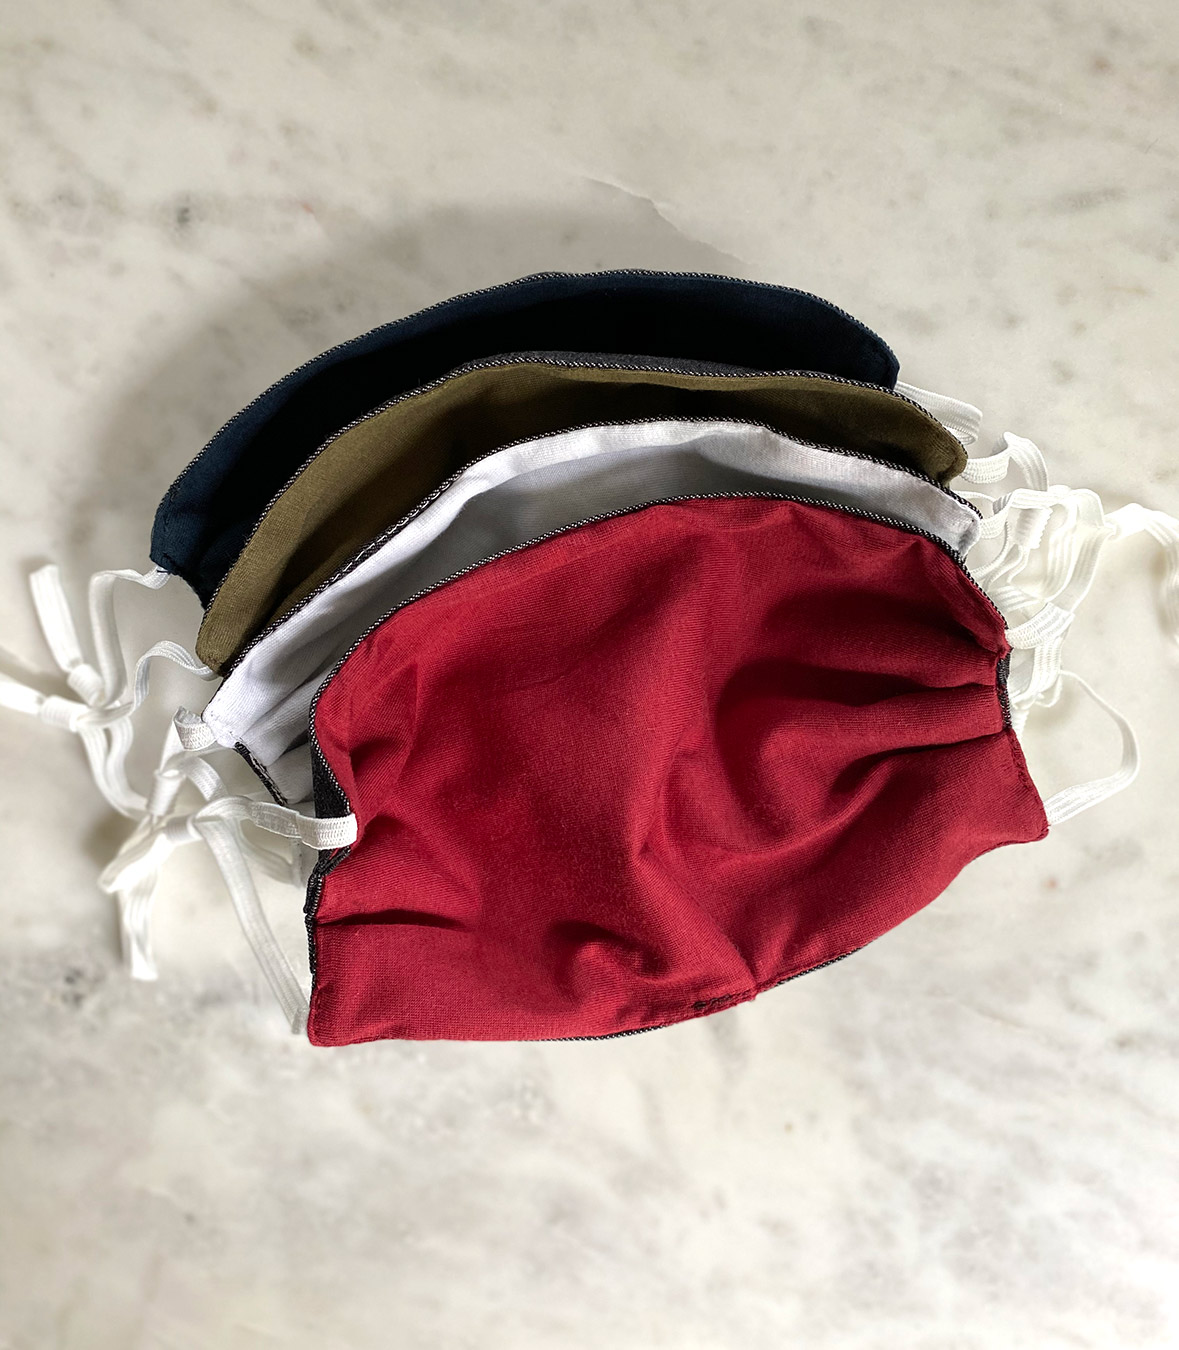 Wool/Cotton Face Masks - 4 pack Made in USA | RAMBLERS WAY